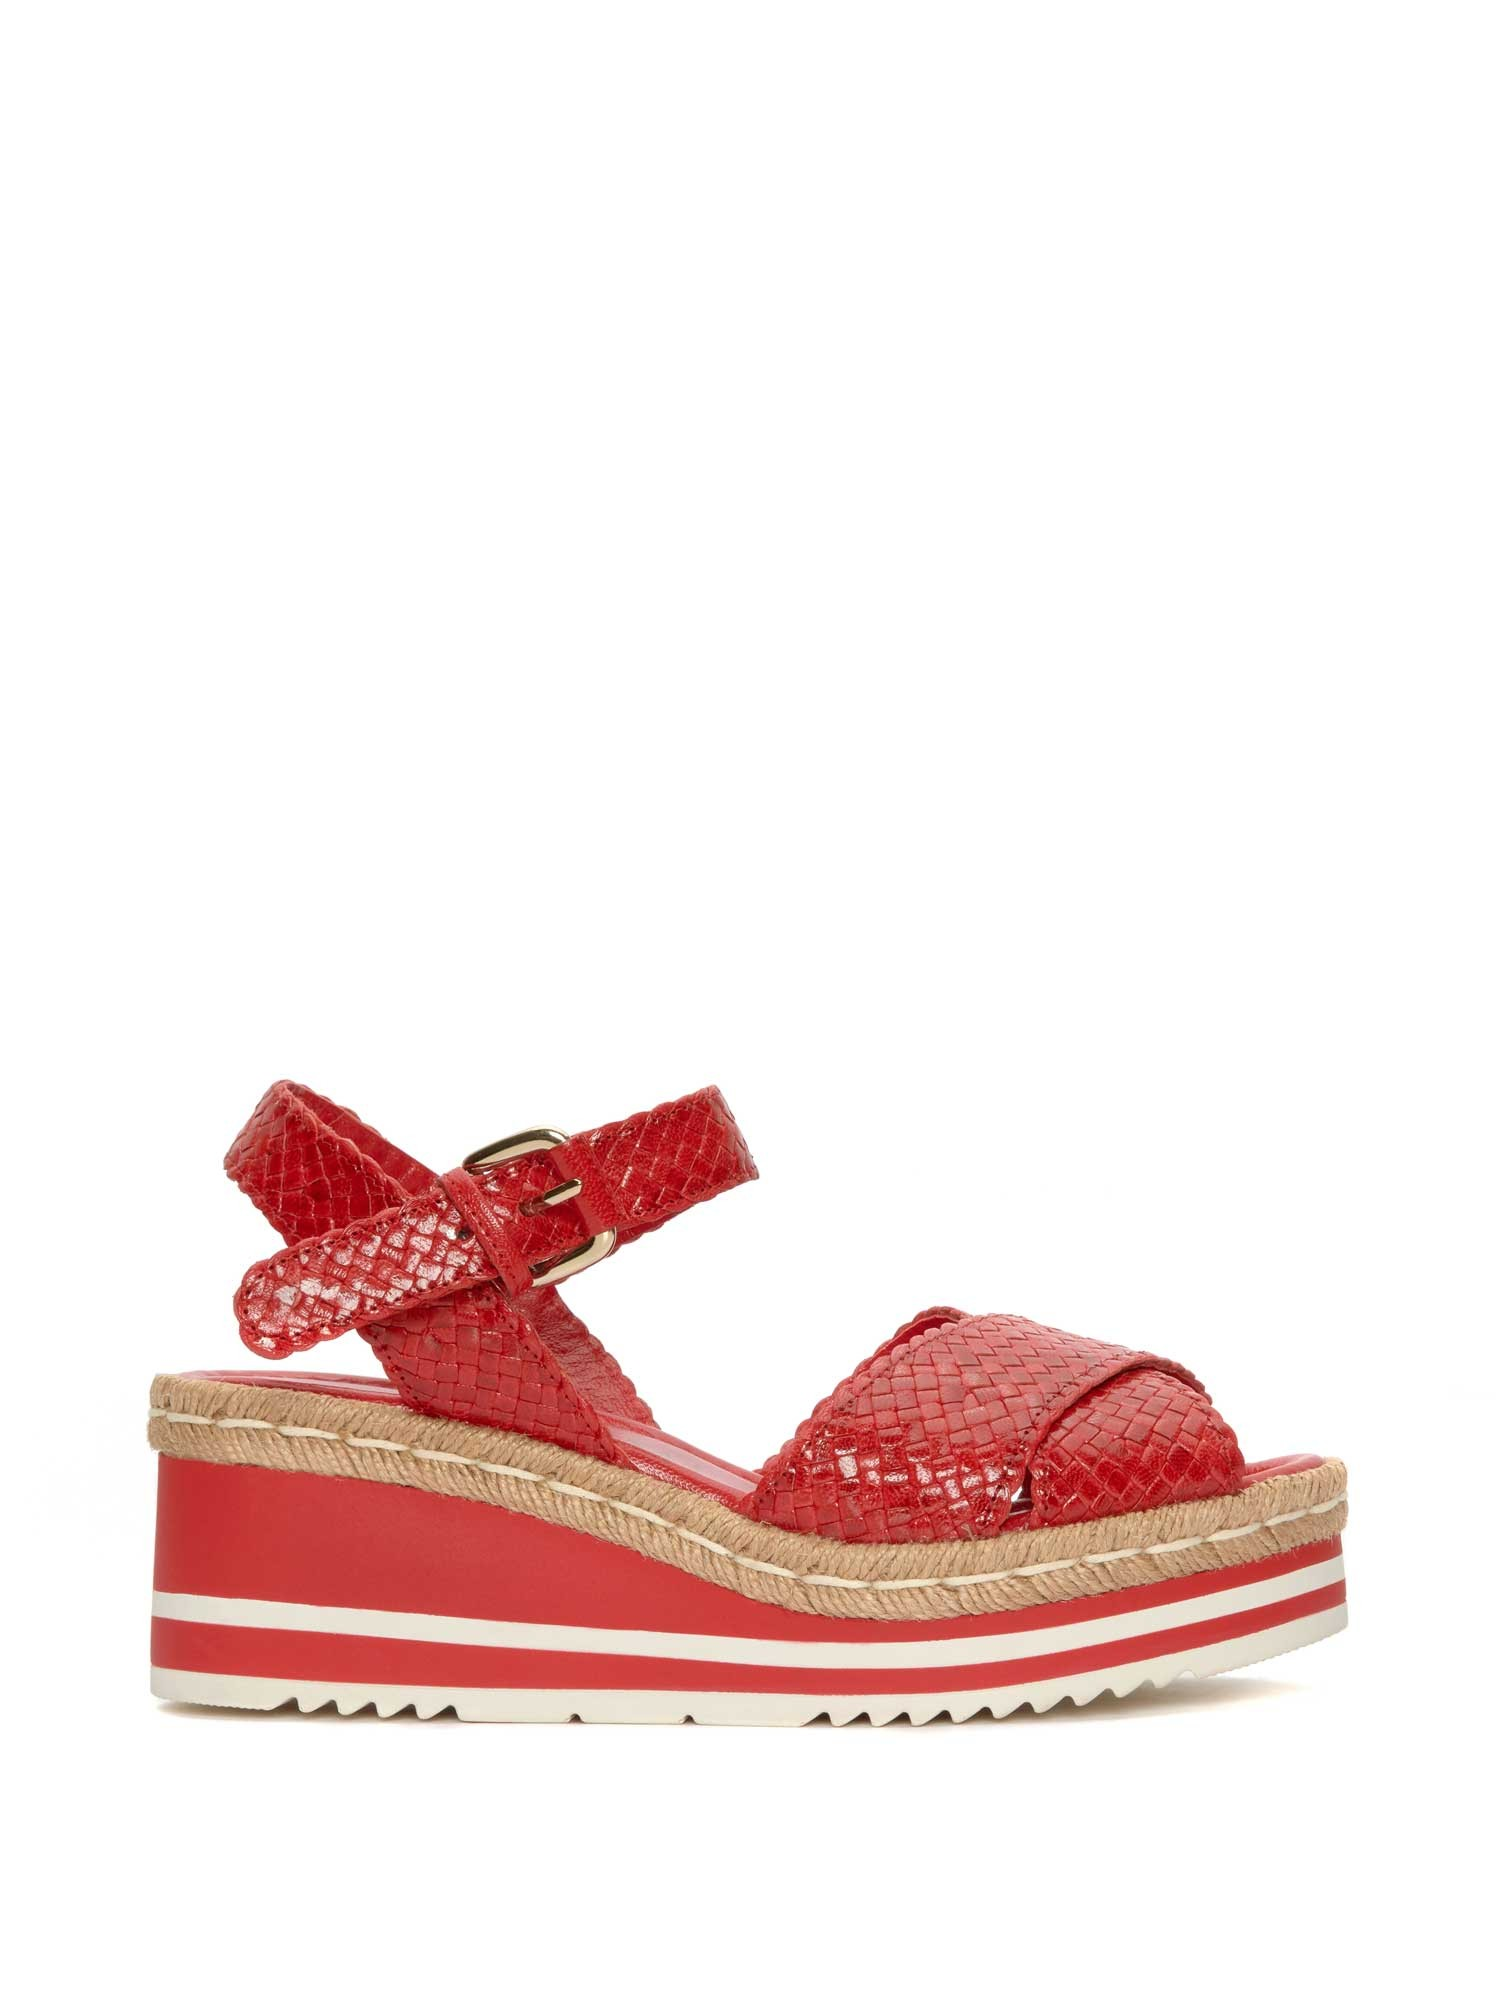 RED BRAIDED PLATFORM SANDAL